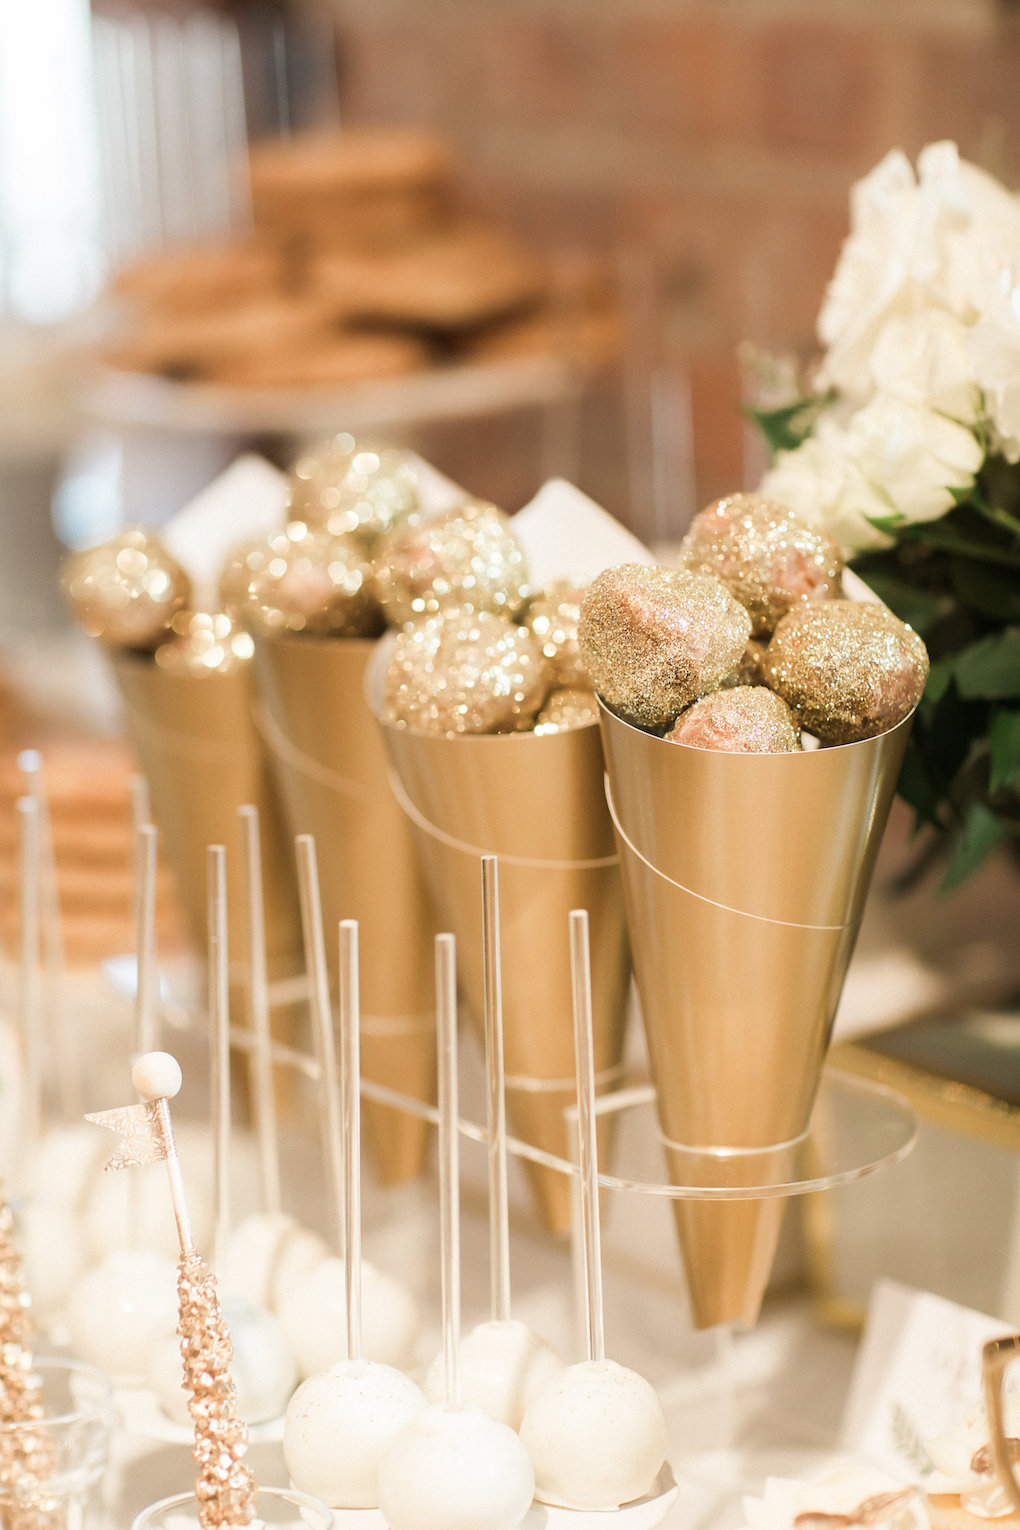 Gold wedding desserts for chic wedding in Buffalo, NY planned by Exhale Events. Find more timeless wedding inspiration at exhale-events.com!